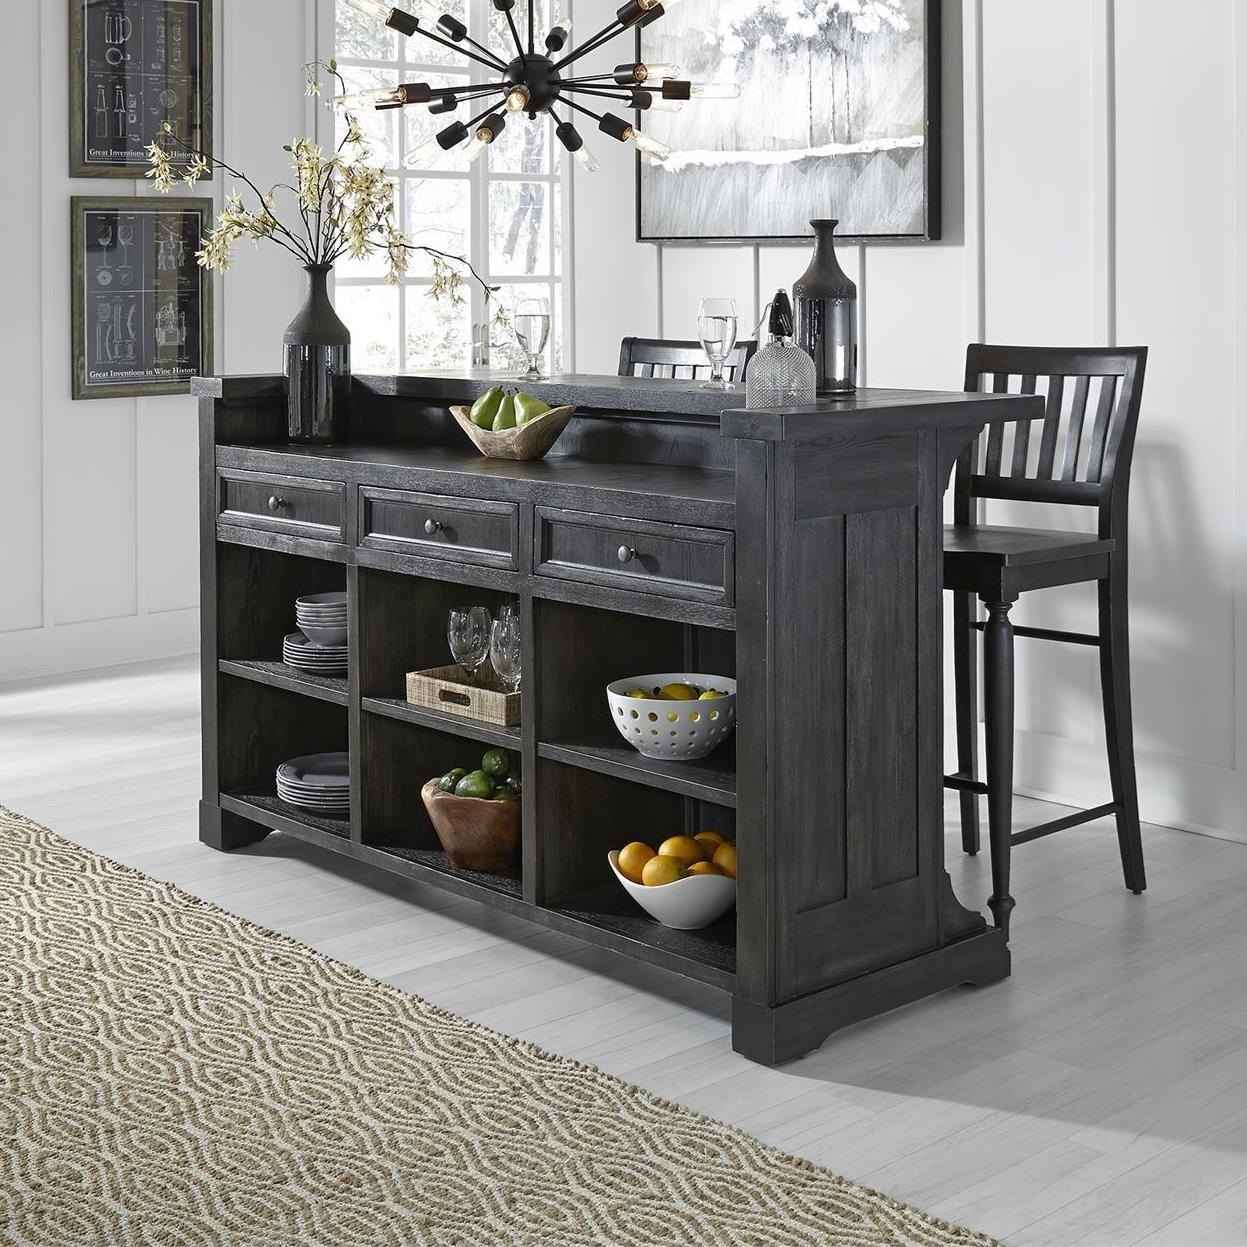 Harvest Home Bar by Liberty Furniture at Northeast Factory Direct